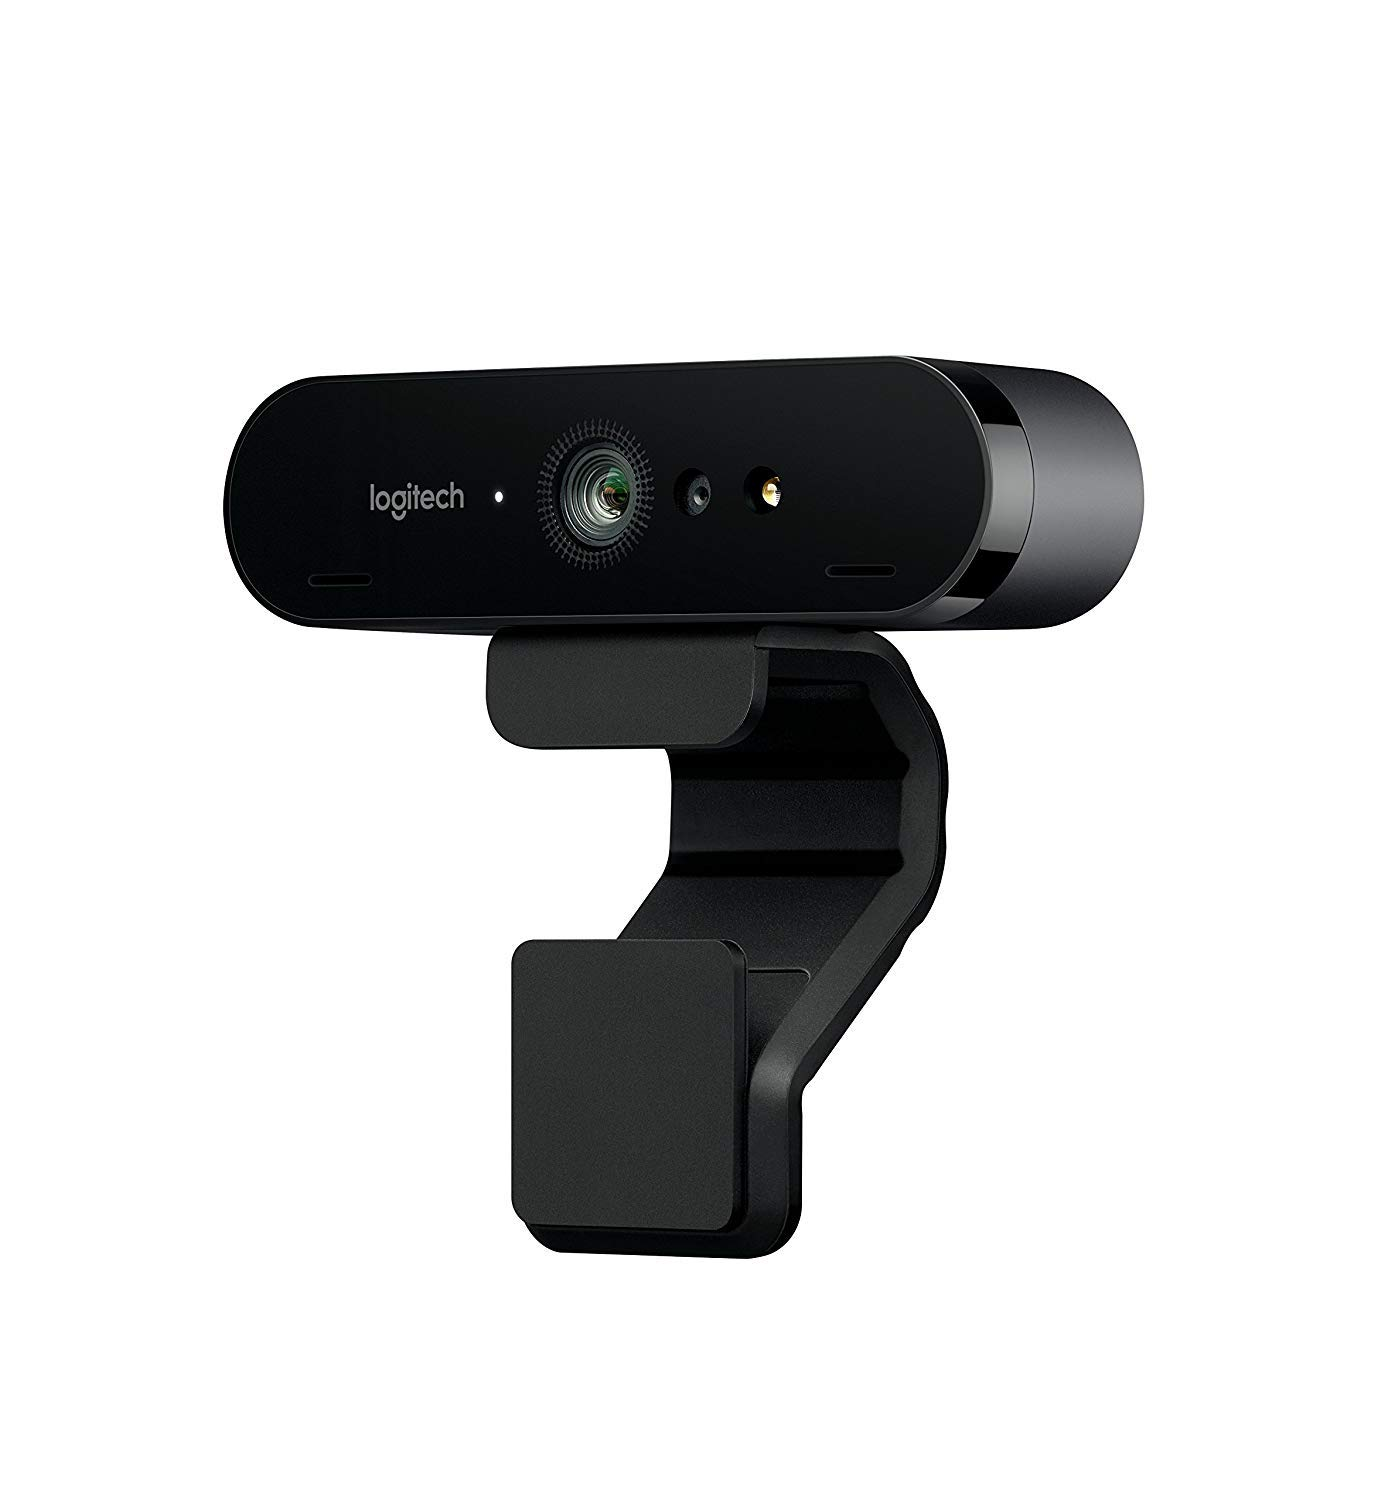 Logitech BRIO – Ultra HD Webcam for Video Conferencing, Recording, and Streaming